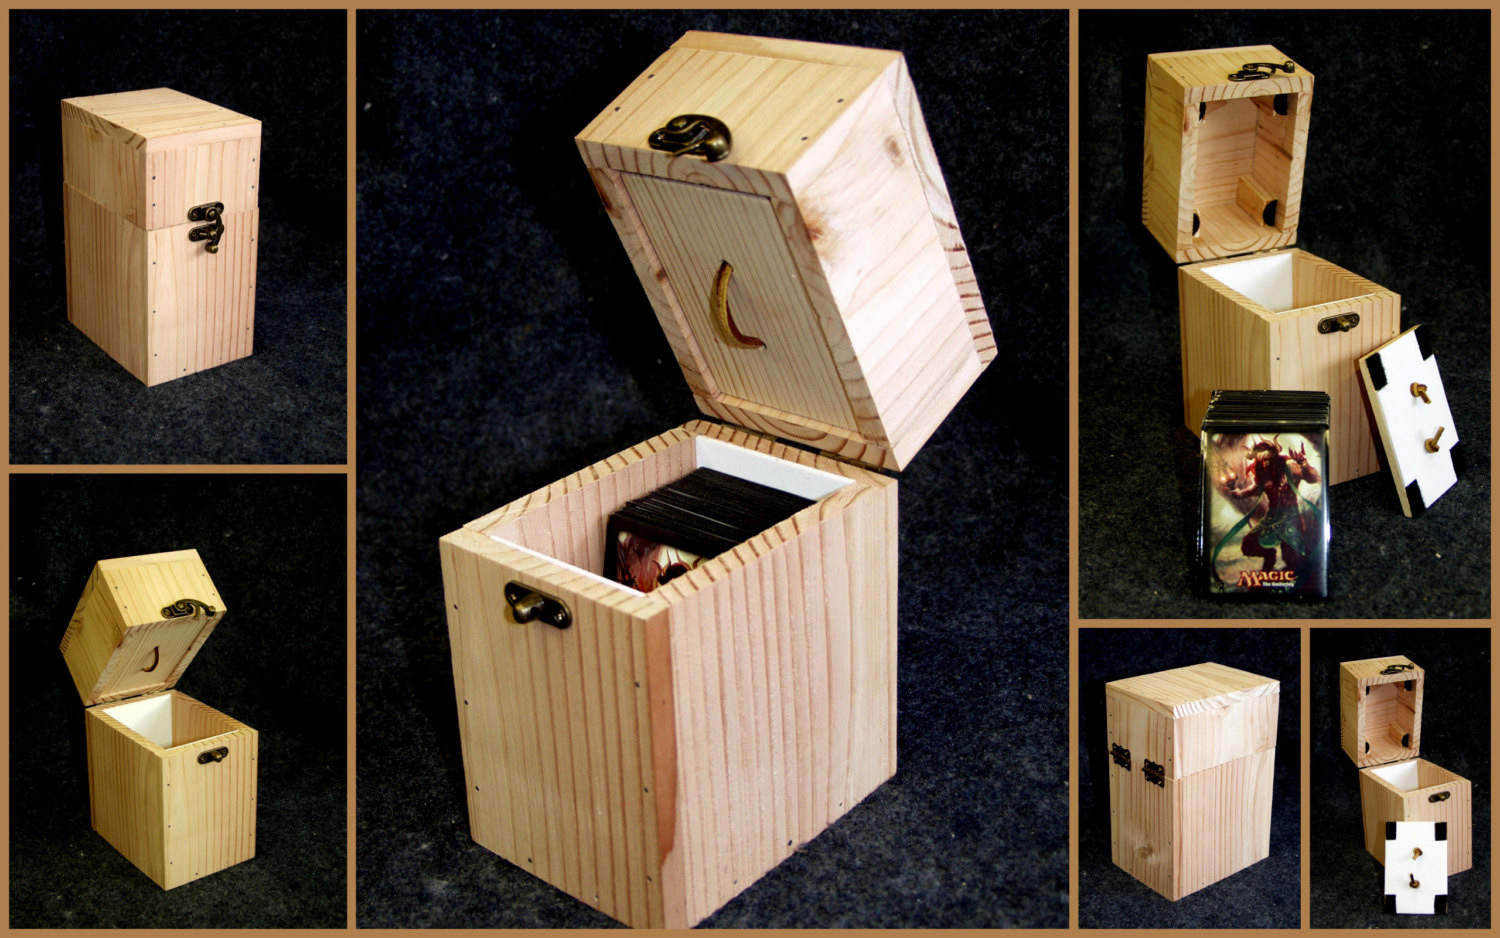 Best ideas about DIY Deck Box . Save or Pin Magic The Gathering DIY deck box Now.